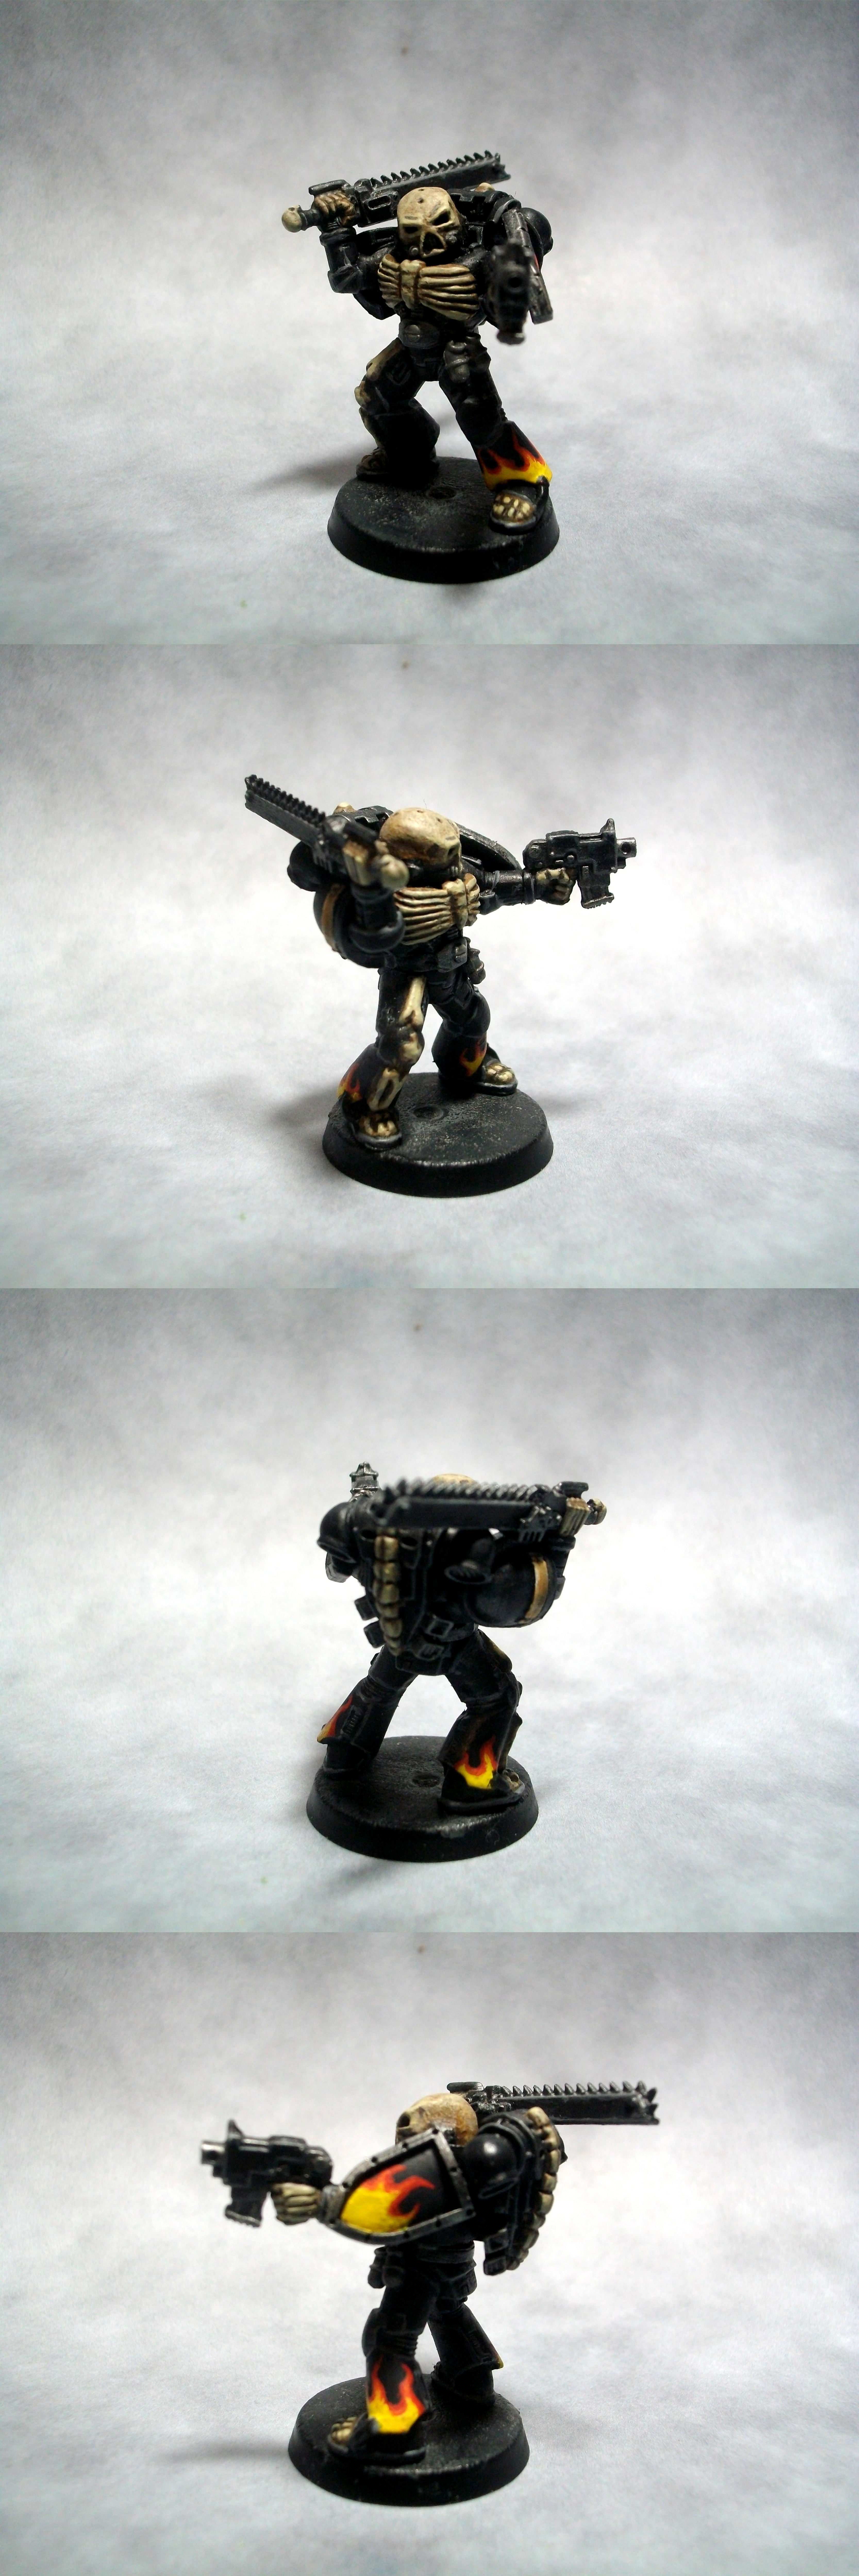 Assault, Black, Bone, Bones, Candle, Chainsword, Conversion, Custom, Damned, Fire, Flames, Flaming, Green, Greenstuff, Imperial, Legion, Legion Of The Damned, Of, Skeletons, Skull, Space, Space Marines, Squad, Stuff, The, Undead, Warp